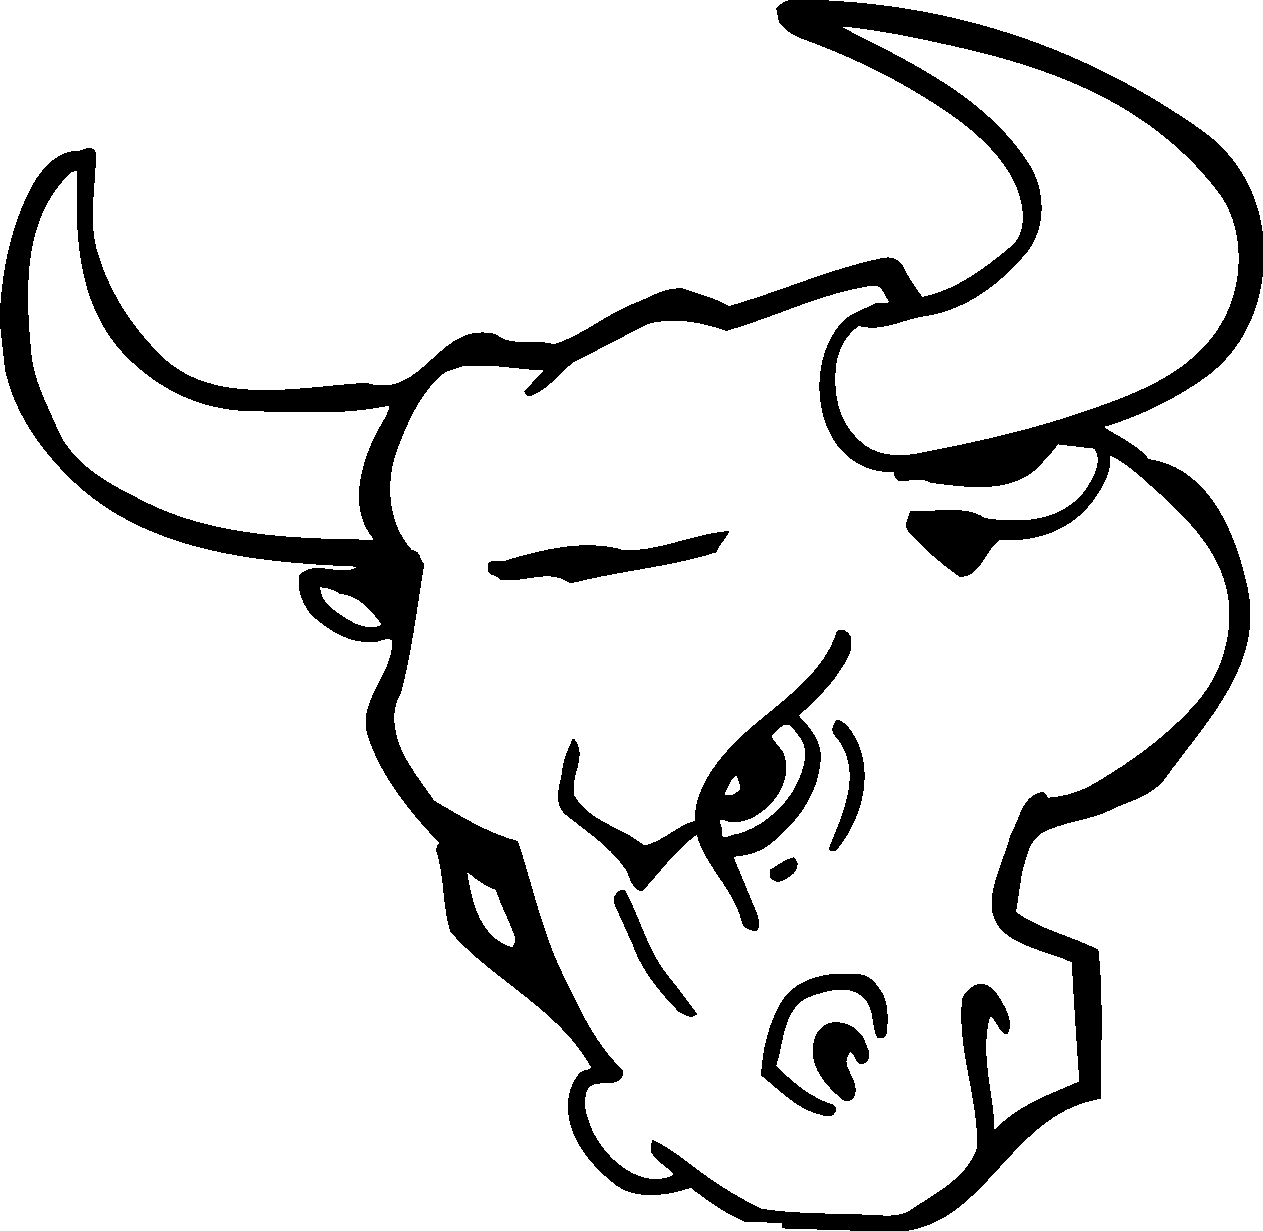 chicago bulls coloring pages - bull head logo